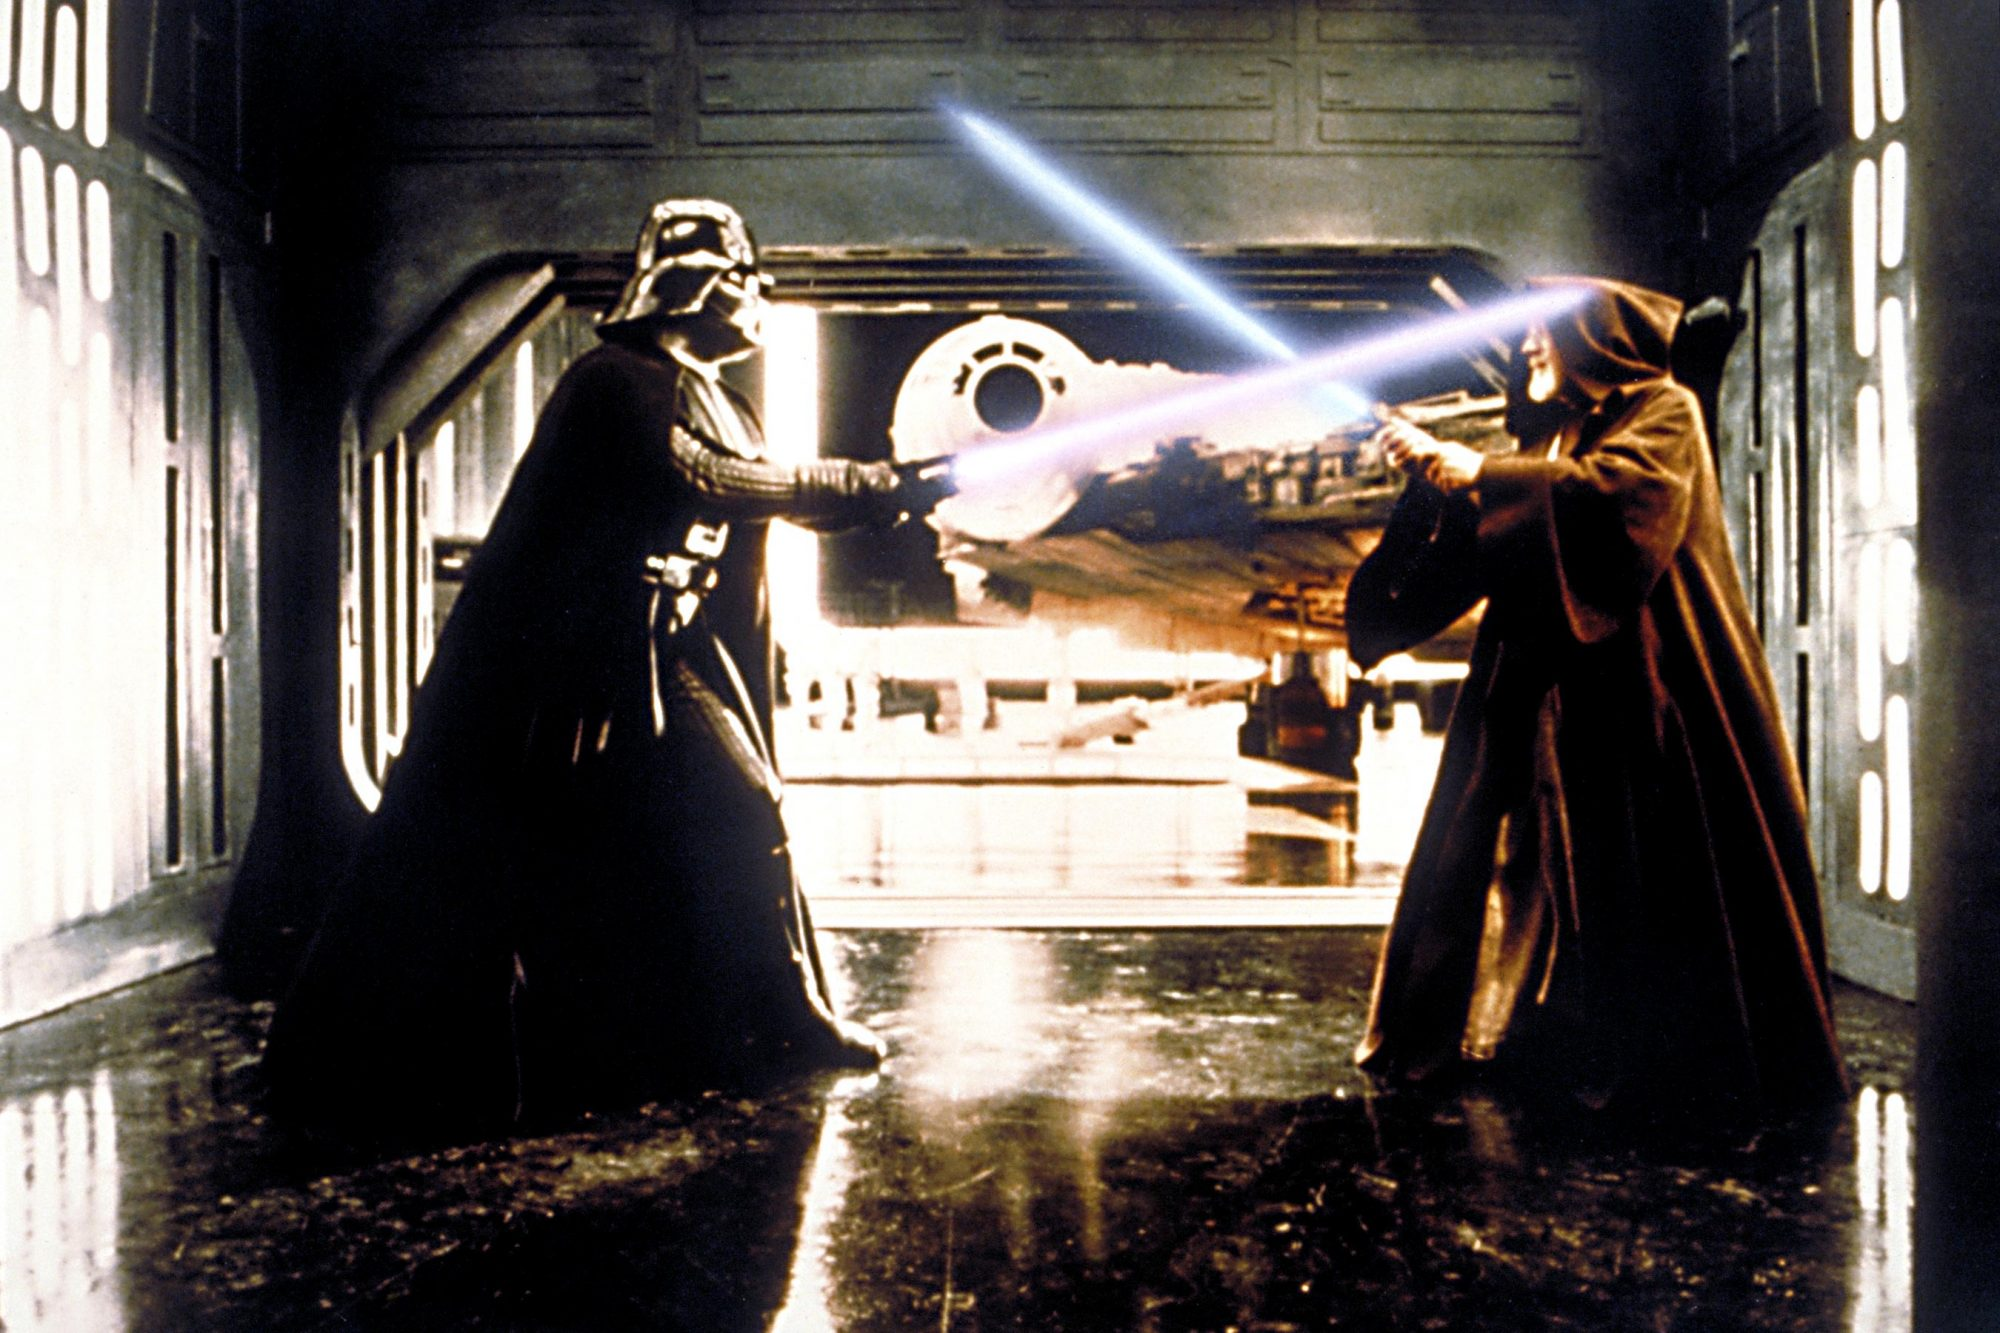 Star Wars: Episode IV - A New Hope (1977)Darth Vader (L) and Alec Guinness